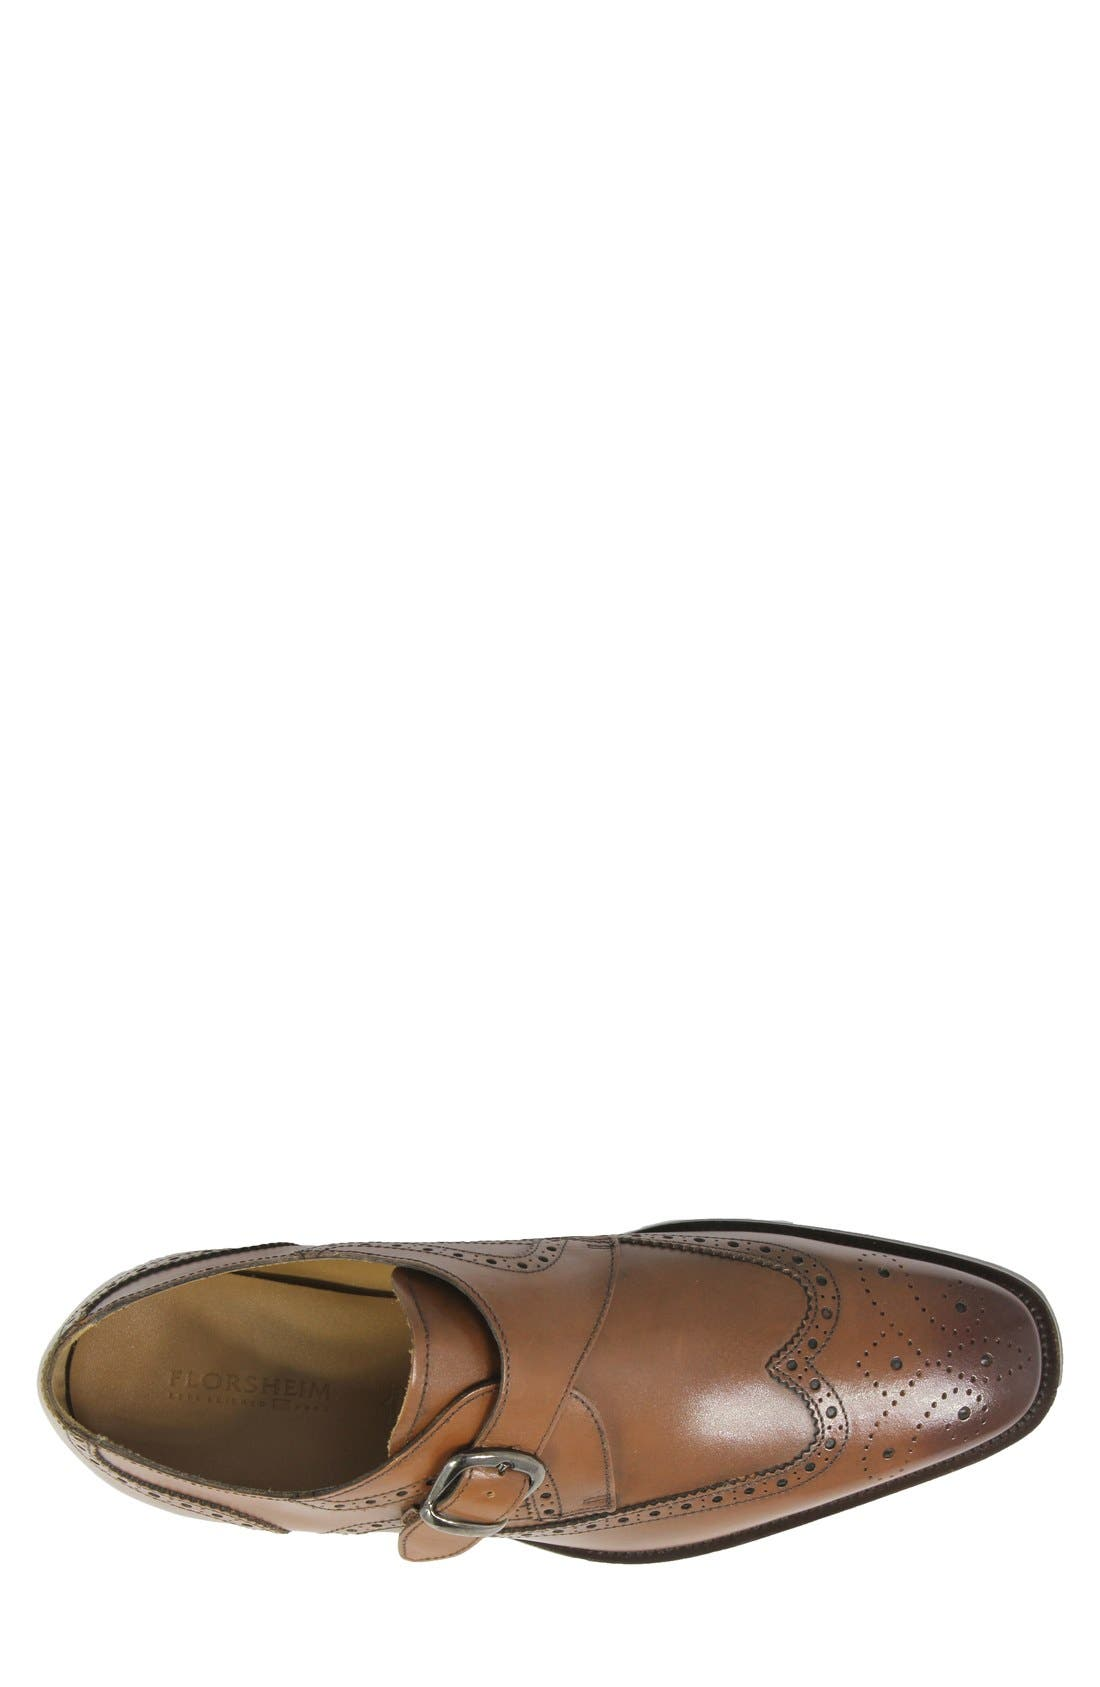 Alternate Image 3  - Florsheim 'Sabato' Wingtip Monk Strap Shoe (Men)